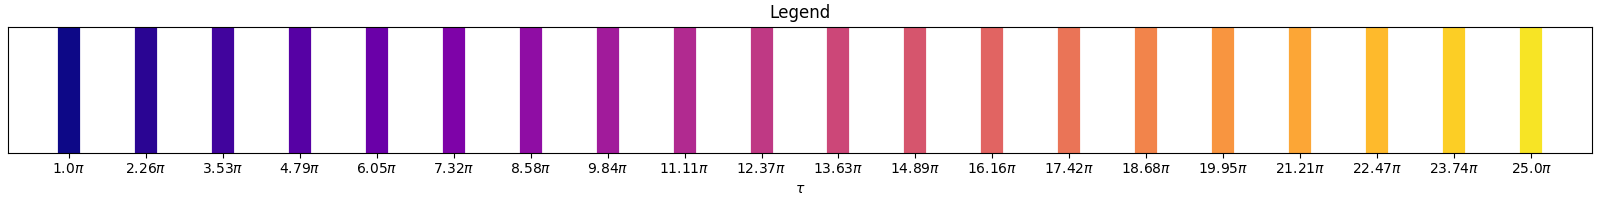 Legend figure associating color of the plot to the total adiabatic sweep time